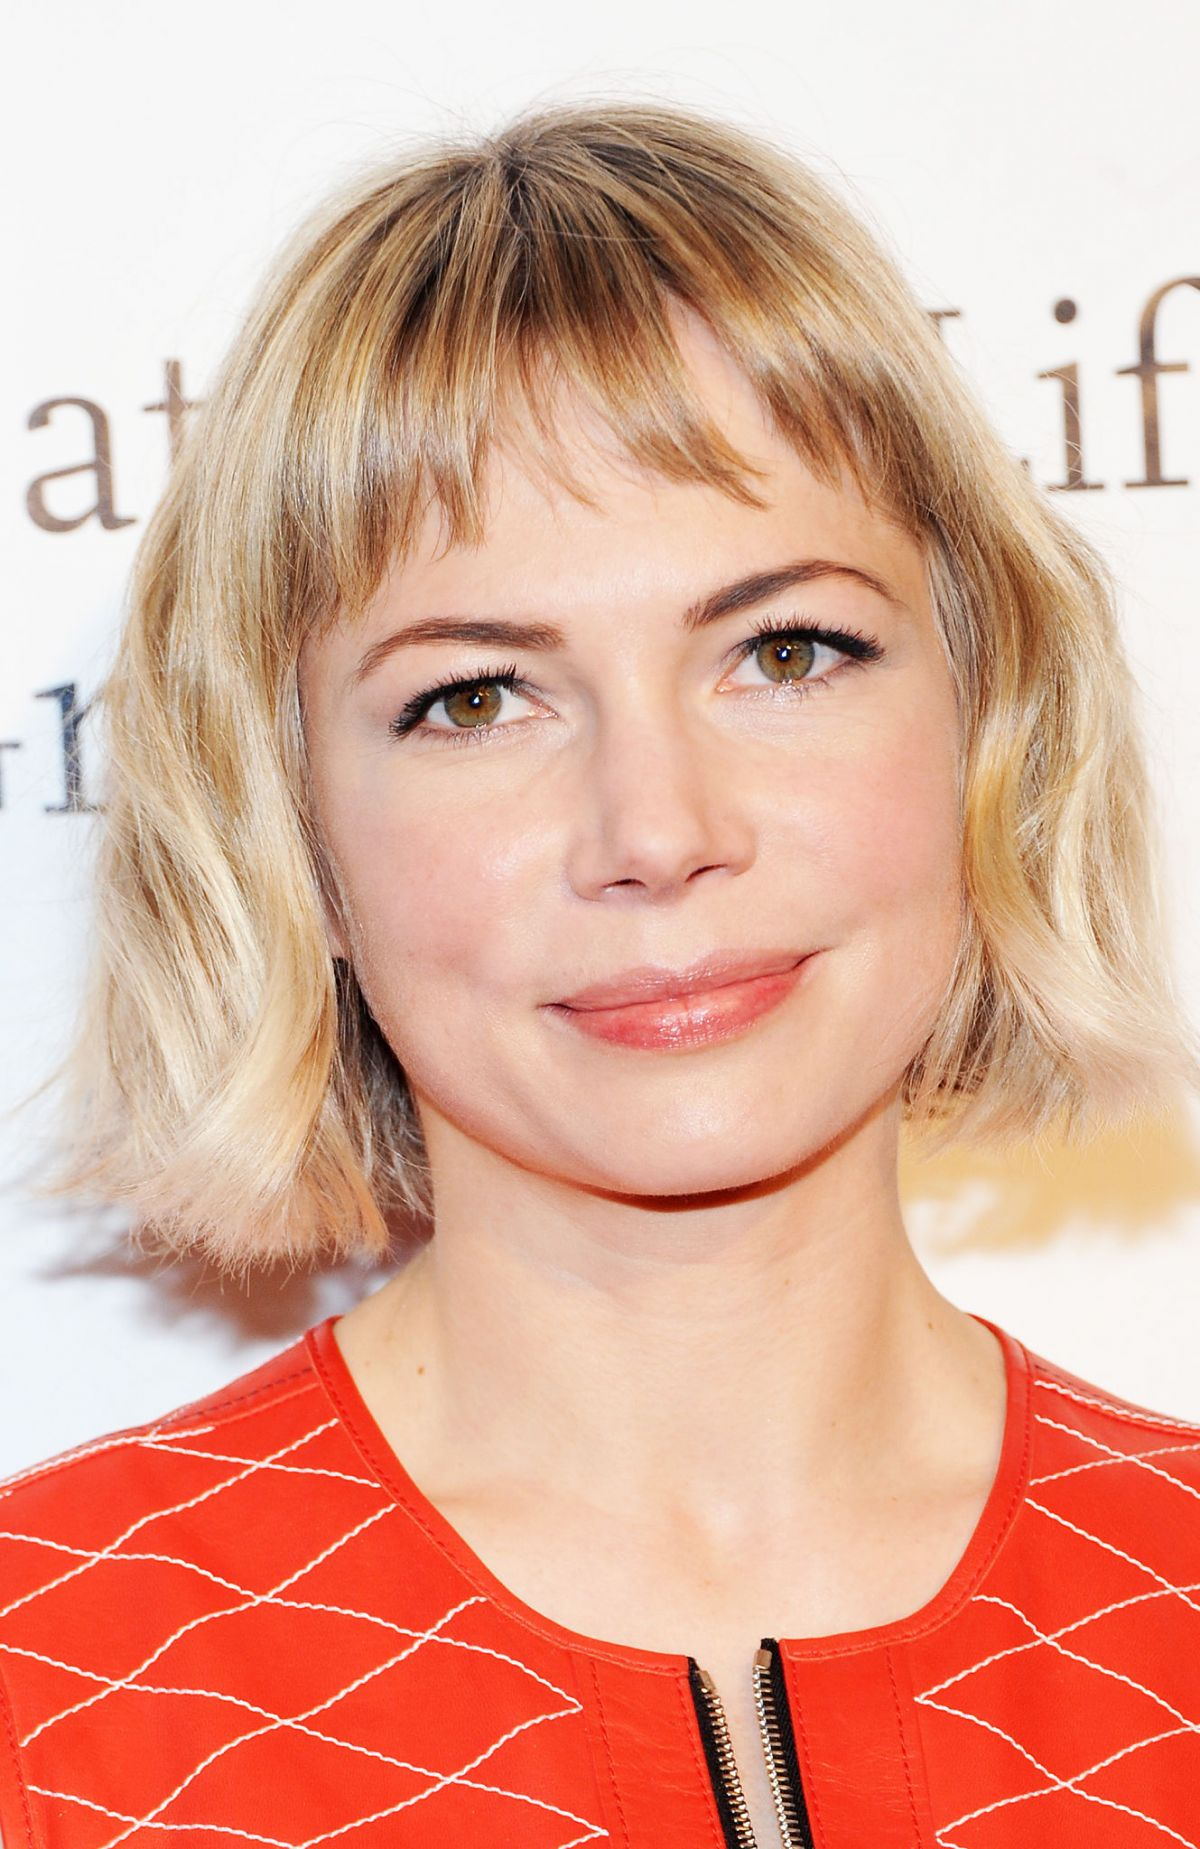 michelle williams - photo #25